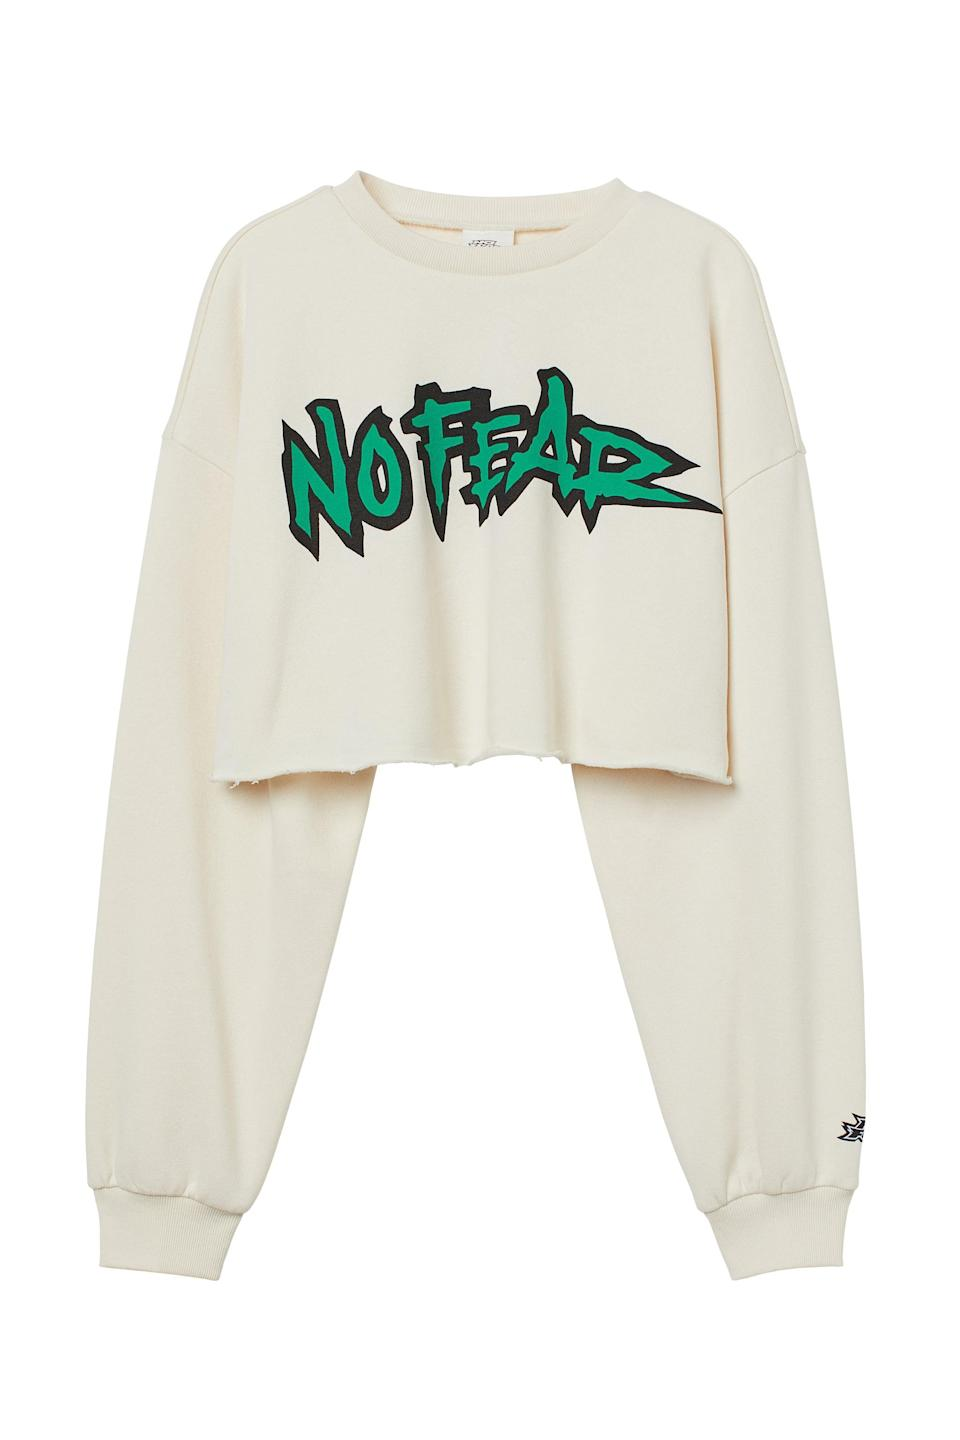 """<p>Paired with a white cropped top underneath and loose pants, this <span>No Fear x H&amp;M Short Printed Sweatshirt</span> ($18) gives you the effortless '90s skater look you're coveting. Plus, when you wear a sweatshirt that says """"No Fear,"""" it might just inspire you to be a little more fearless.</p>"""